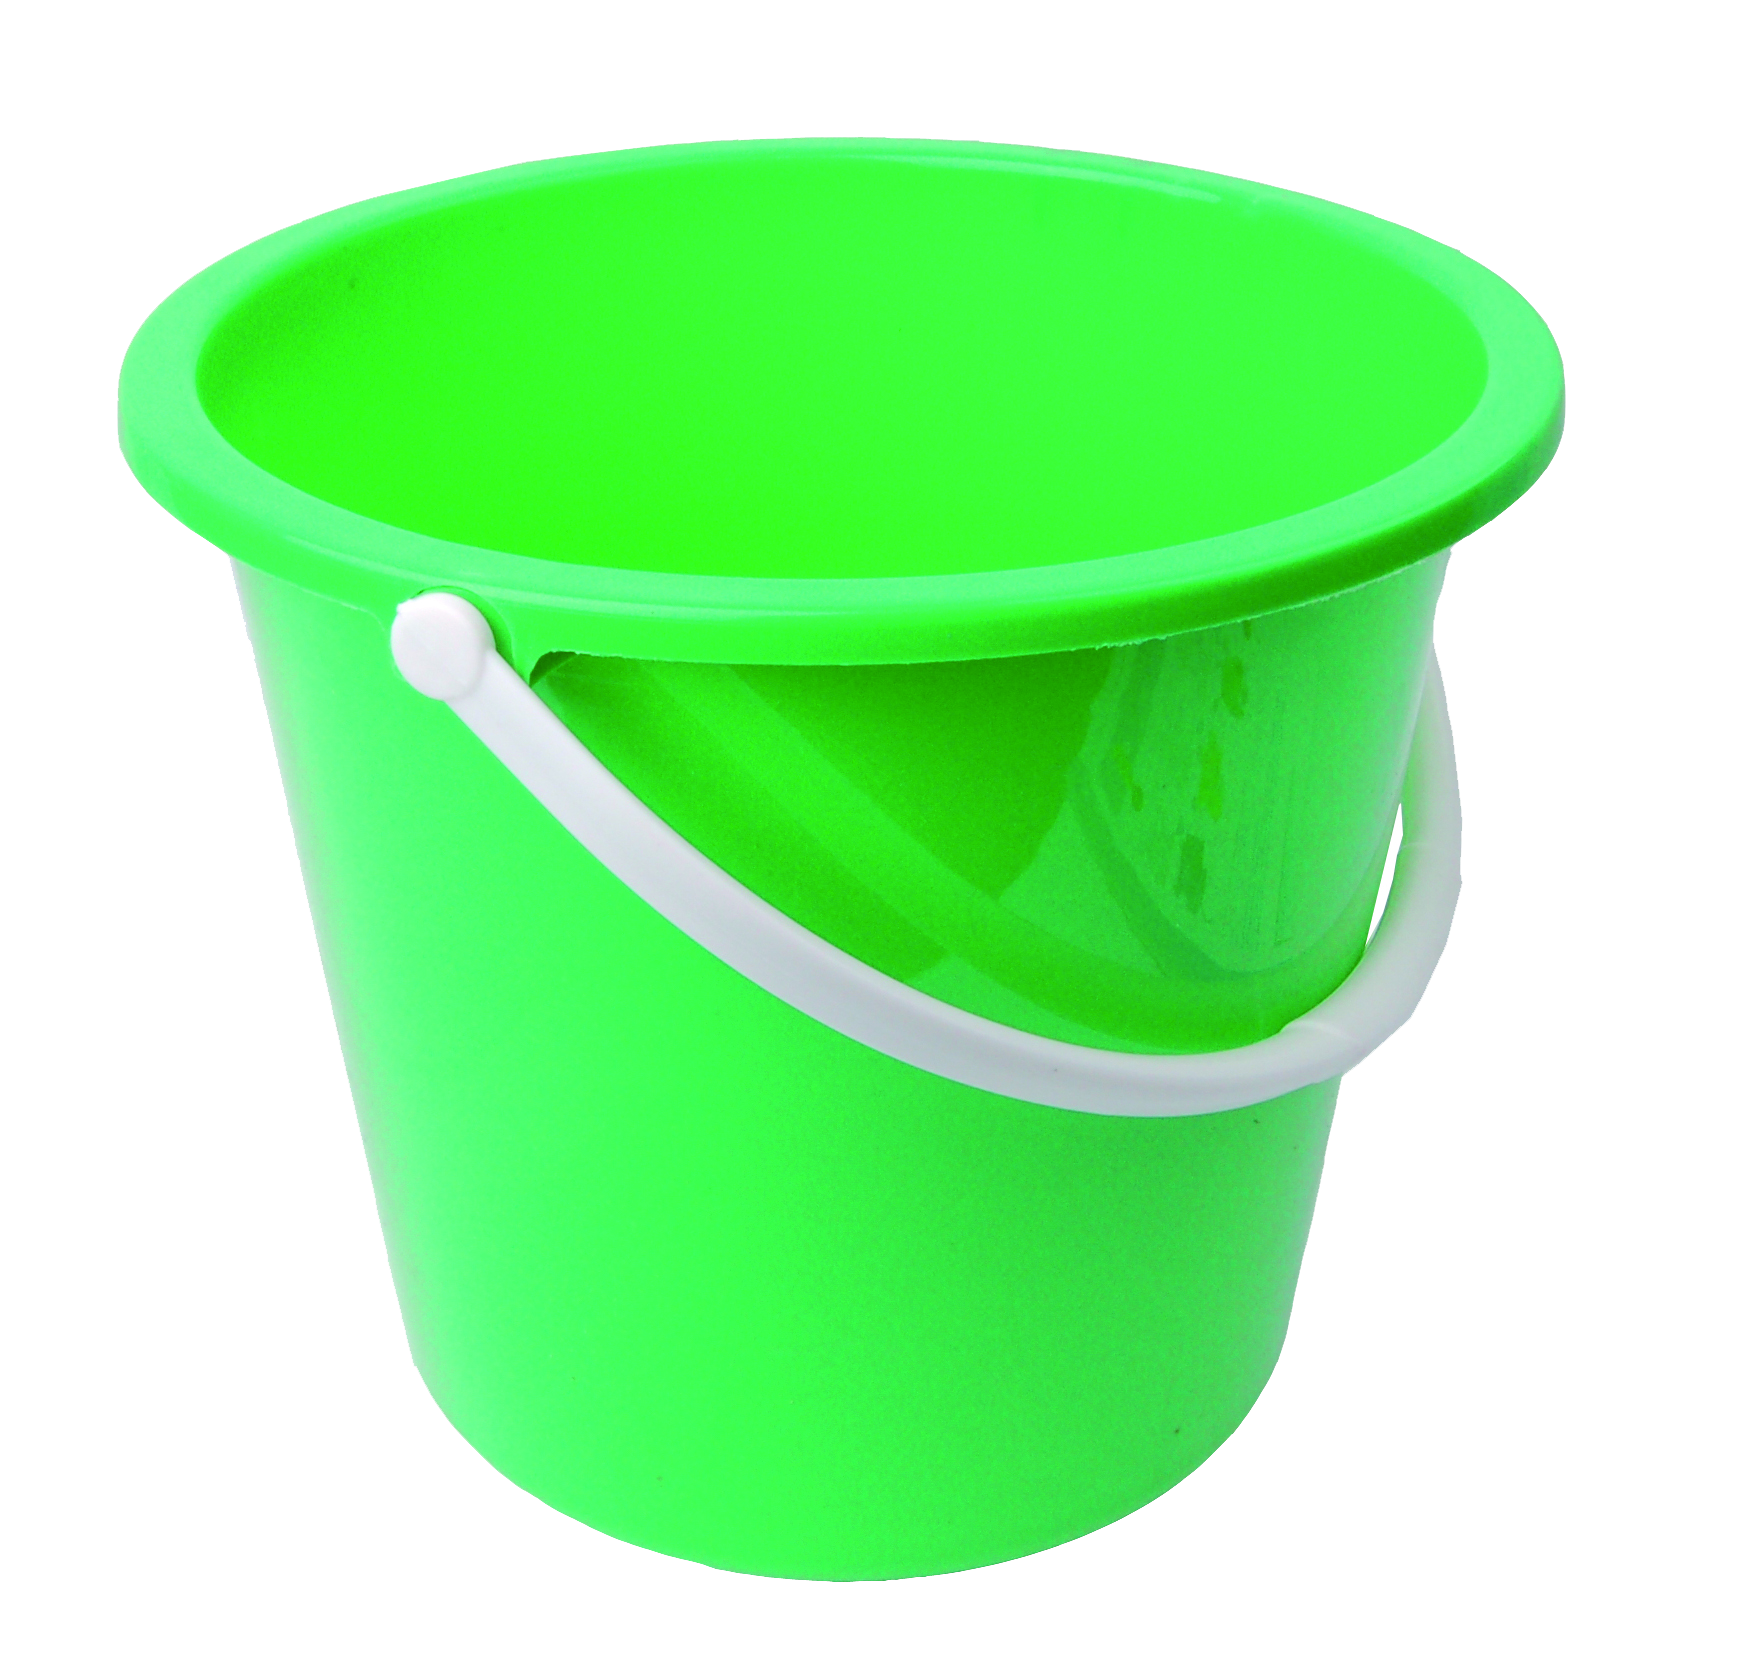 Png images free download. Bucket clipart transparent background